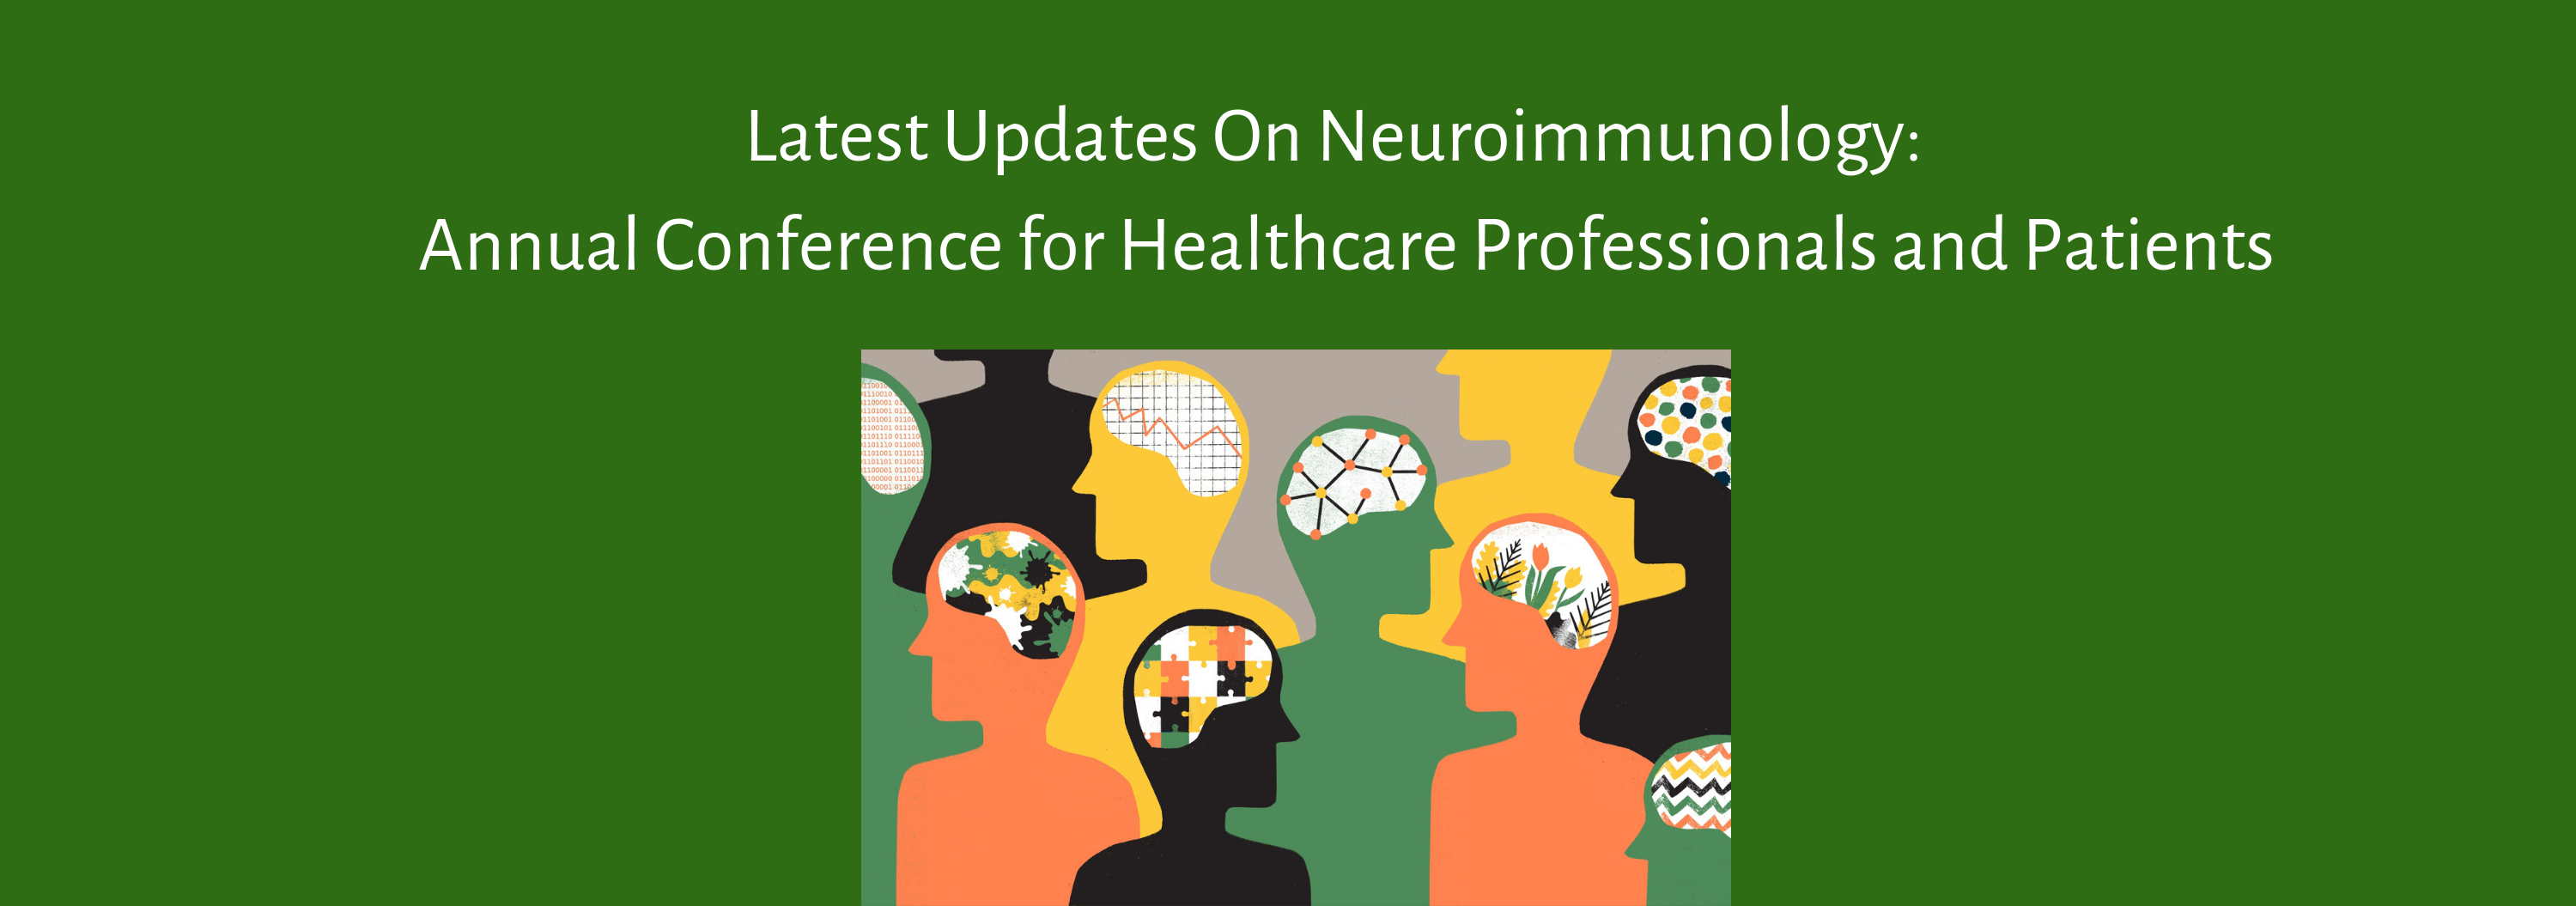 Latest Updates On Neuroimmunology: 4th Annual Conference for Healthcare Professionals and Patients Banner